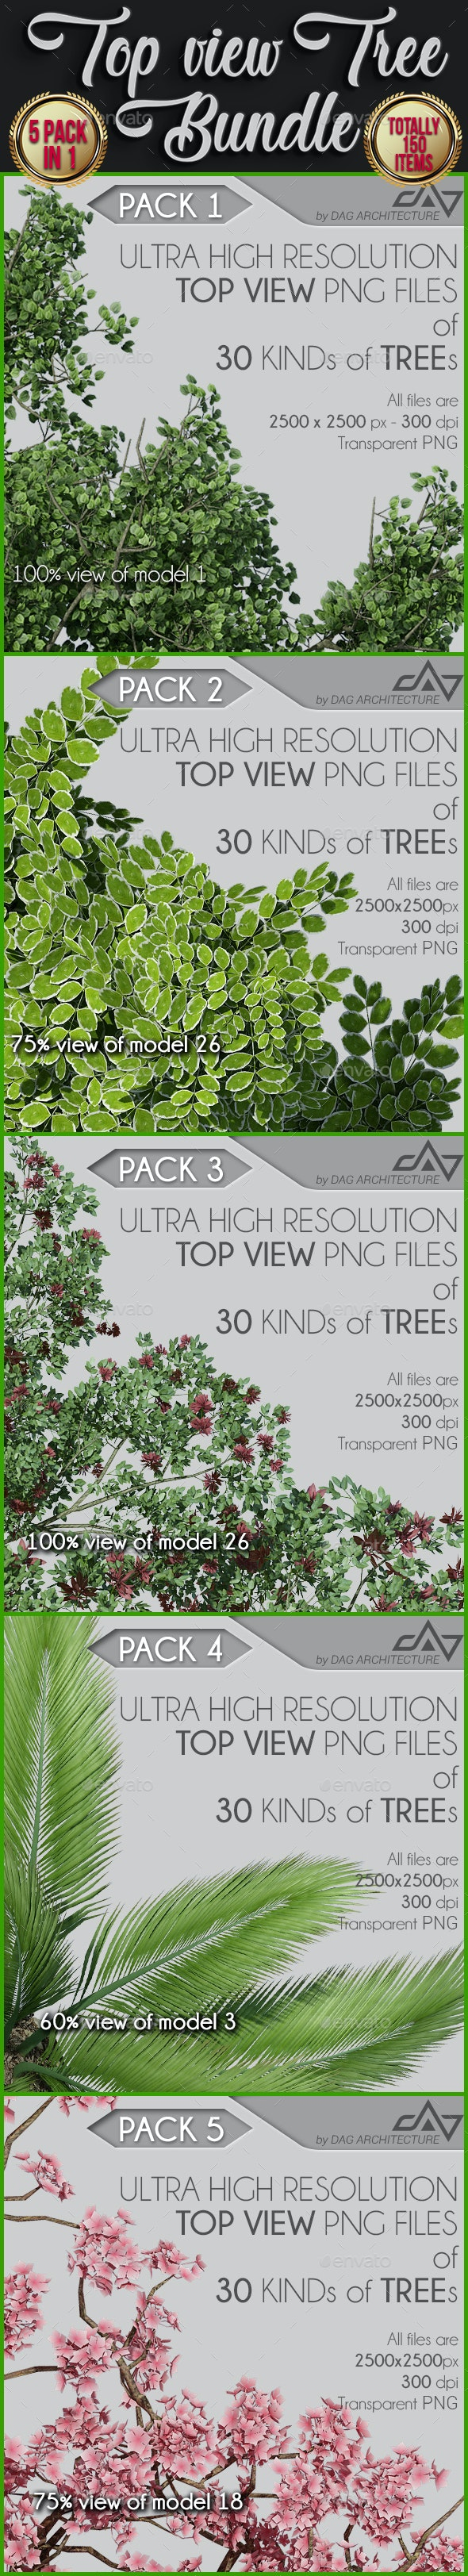 5 in 1 Top View Tree Bundle - 150 PNG Files - Objects 3D Renders